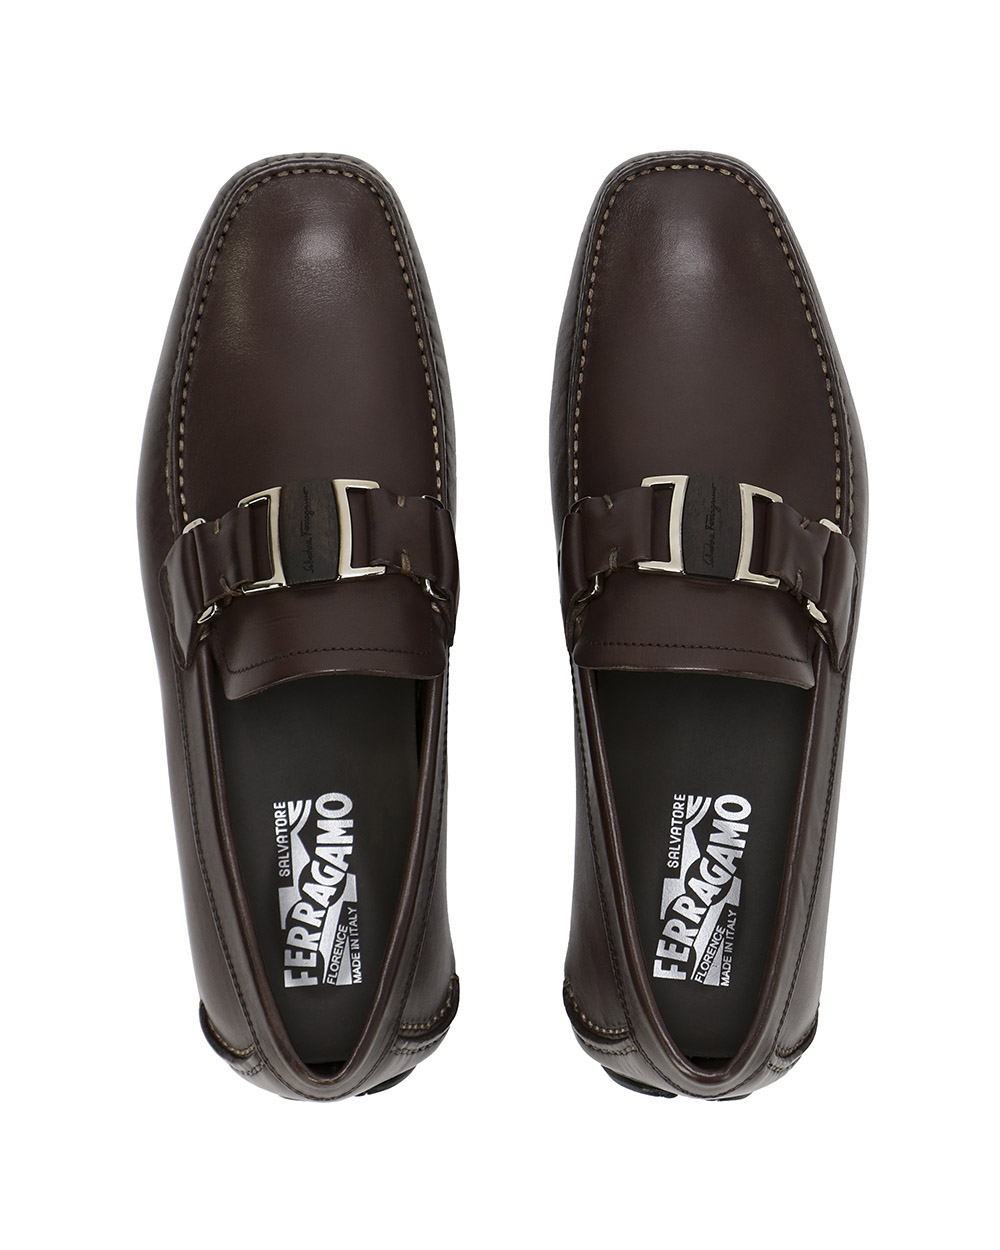 Sardegna Leather Loafers 3